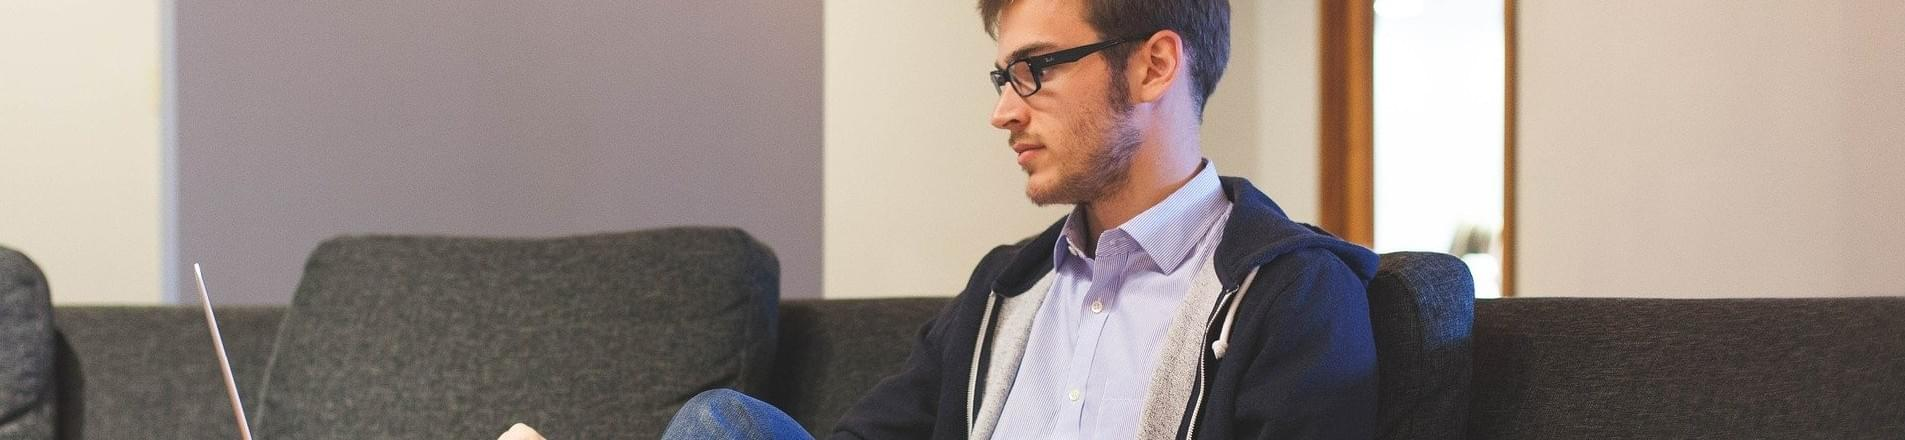 How to perform well at panel interview